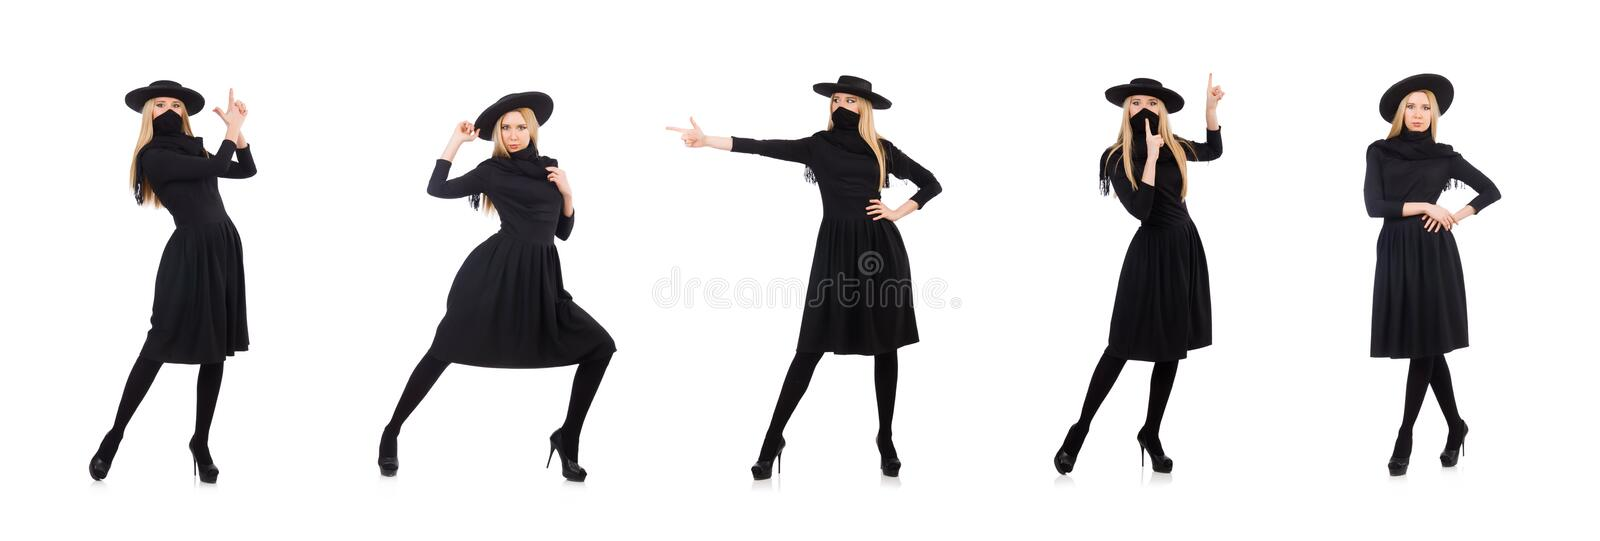 Woman in long black dress isolated on white stock photos